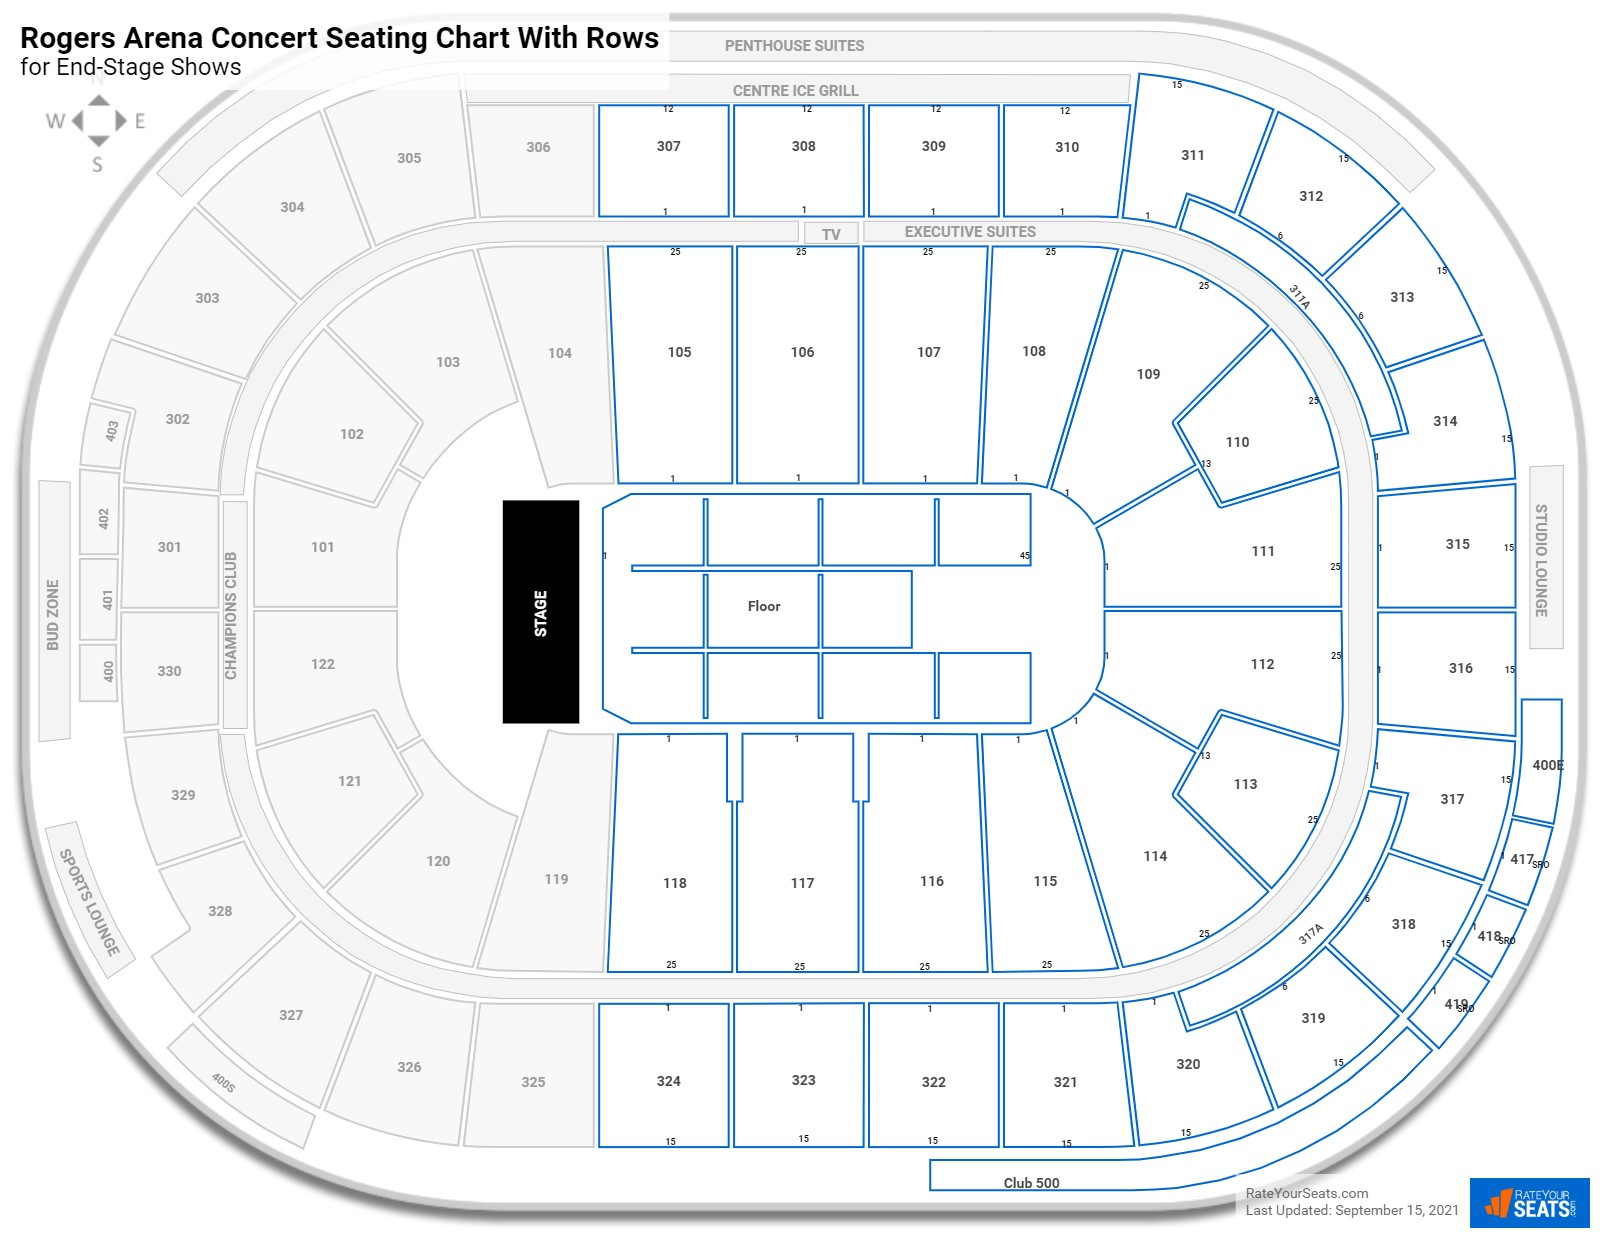 Rogers Arena seating chart with rows concert